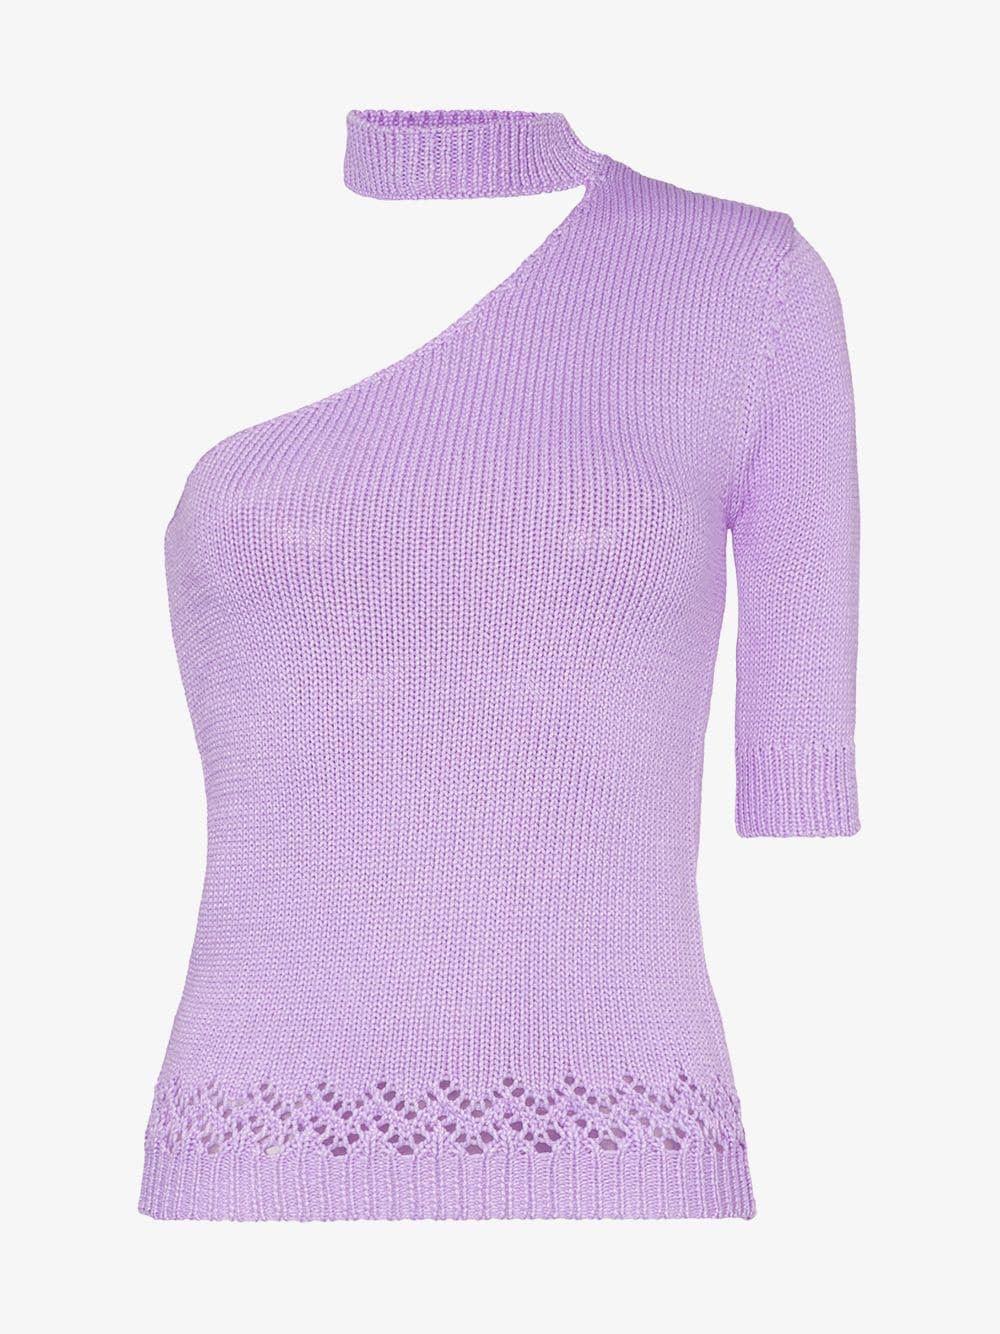 Les Reveries one-shouldered knitted mock neck T-shirt in purple